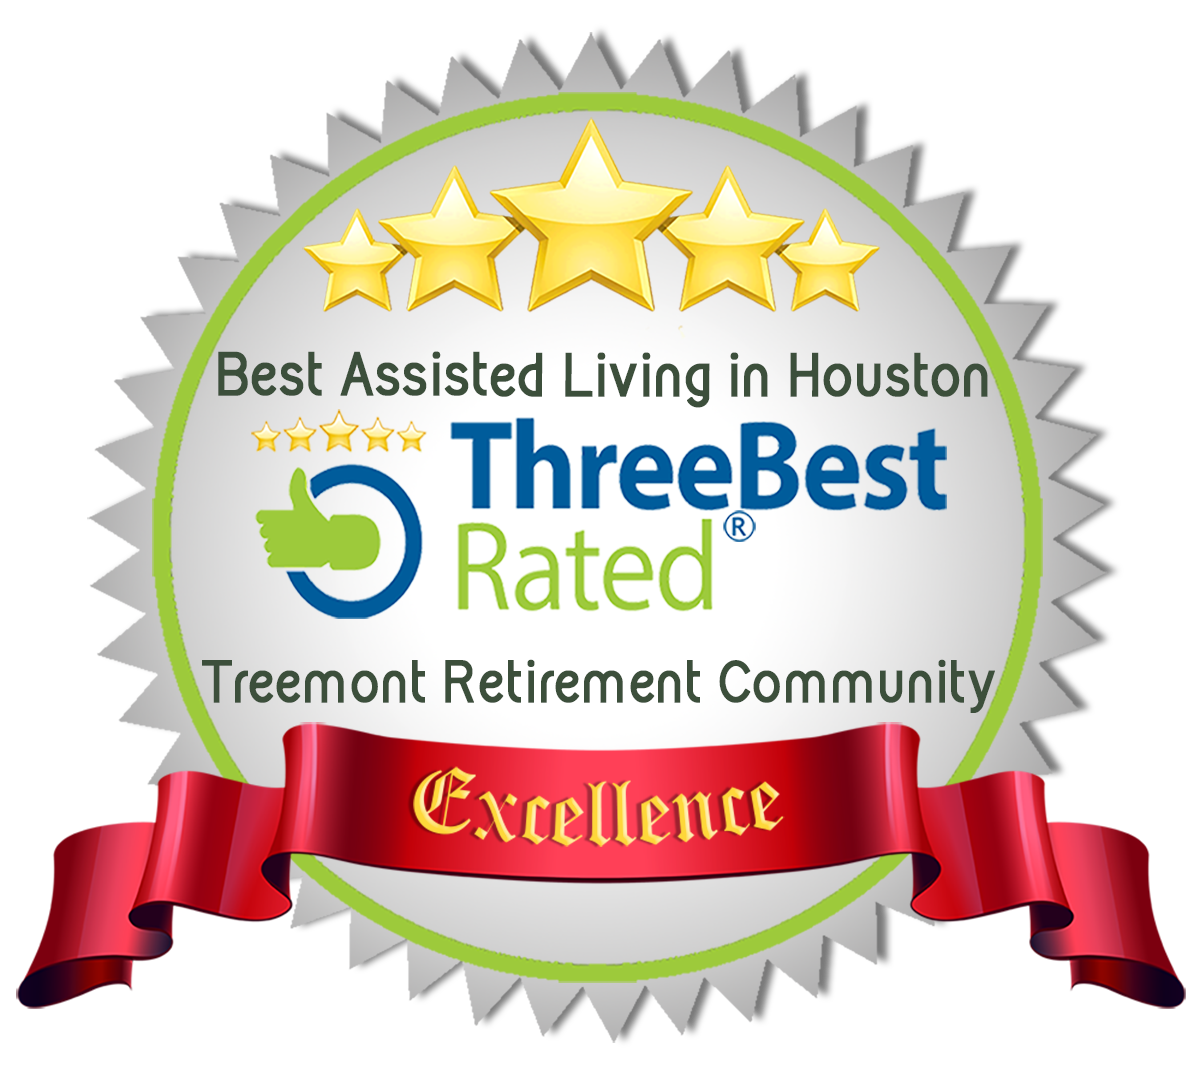 treemontretirementcommunity-houston-three-best-rated-assisted-living-houston